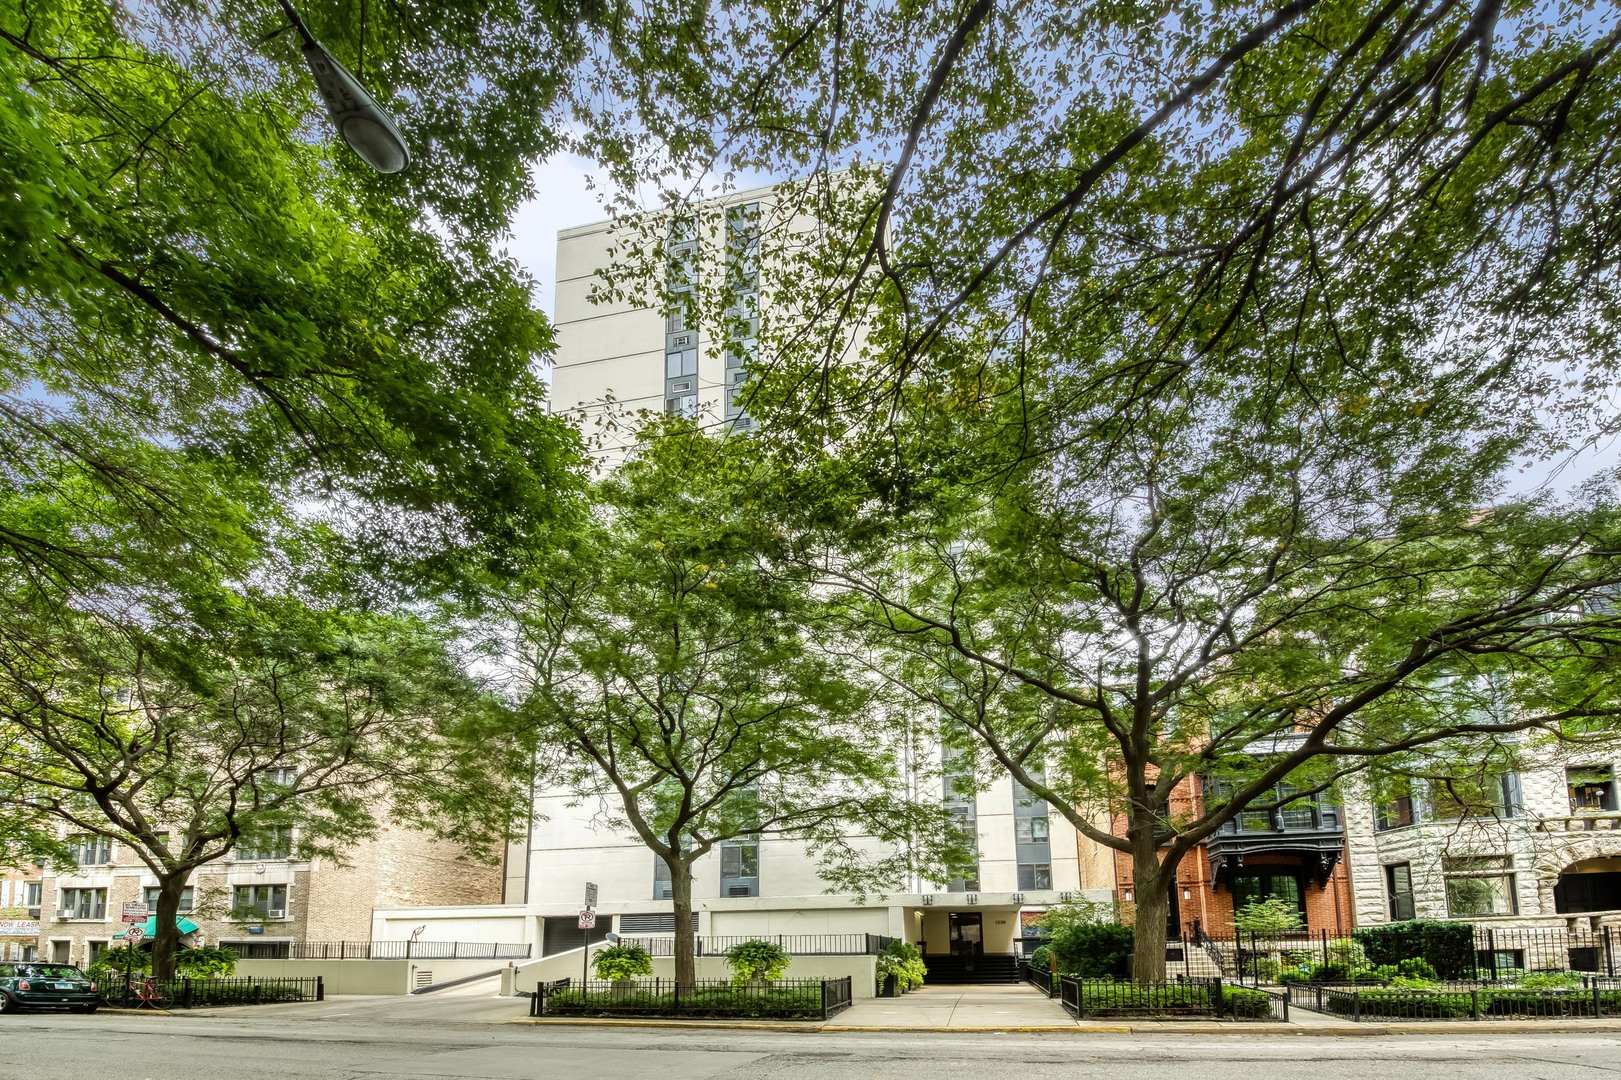 1339 DEARBORN Street, Chicago, Illinois 60610, 2 Bedrooms Bedrooms, ,1 BathroomBathrooms,Attached Single,For Sale,DEARBORN,10910129